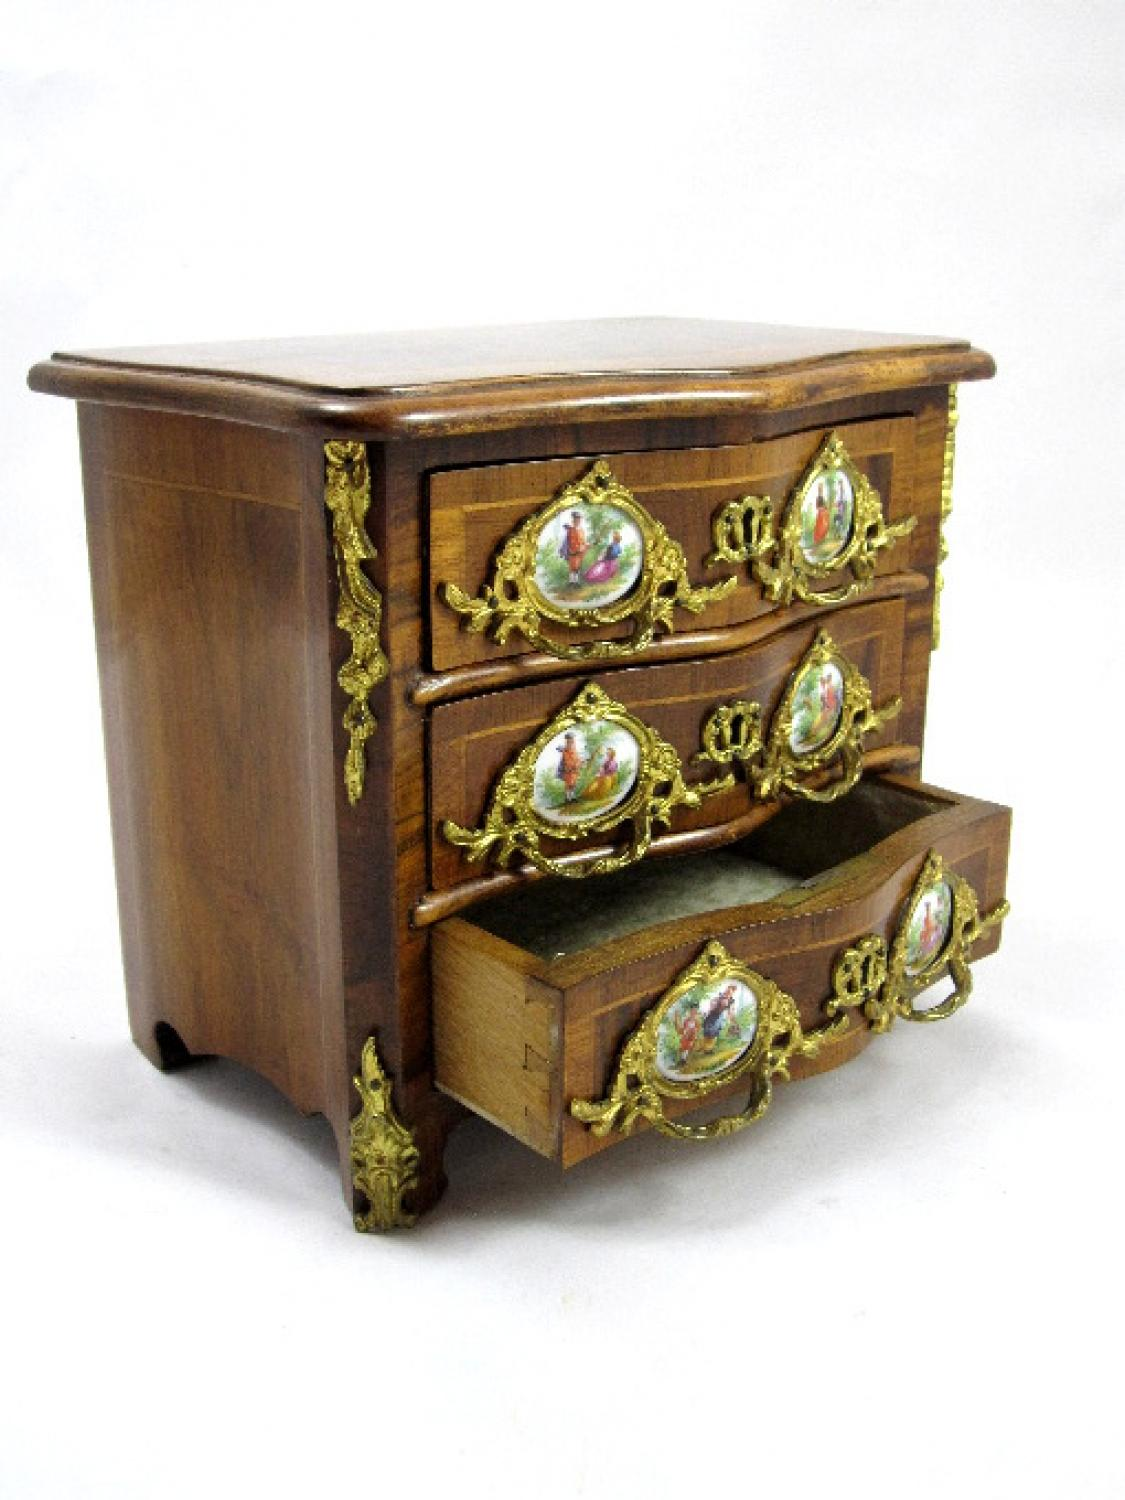 Rare Antique Miniature Chest of Drawers